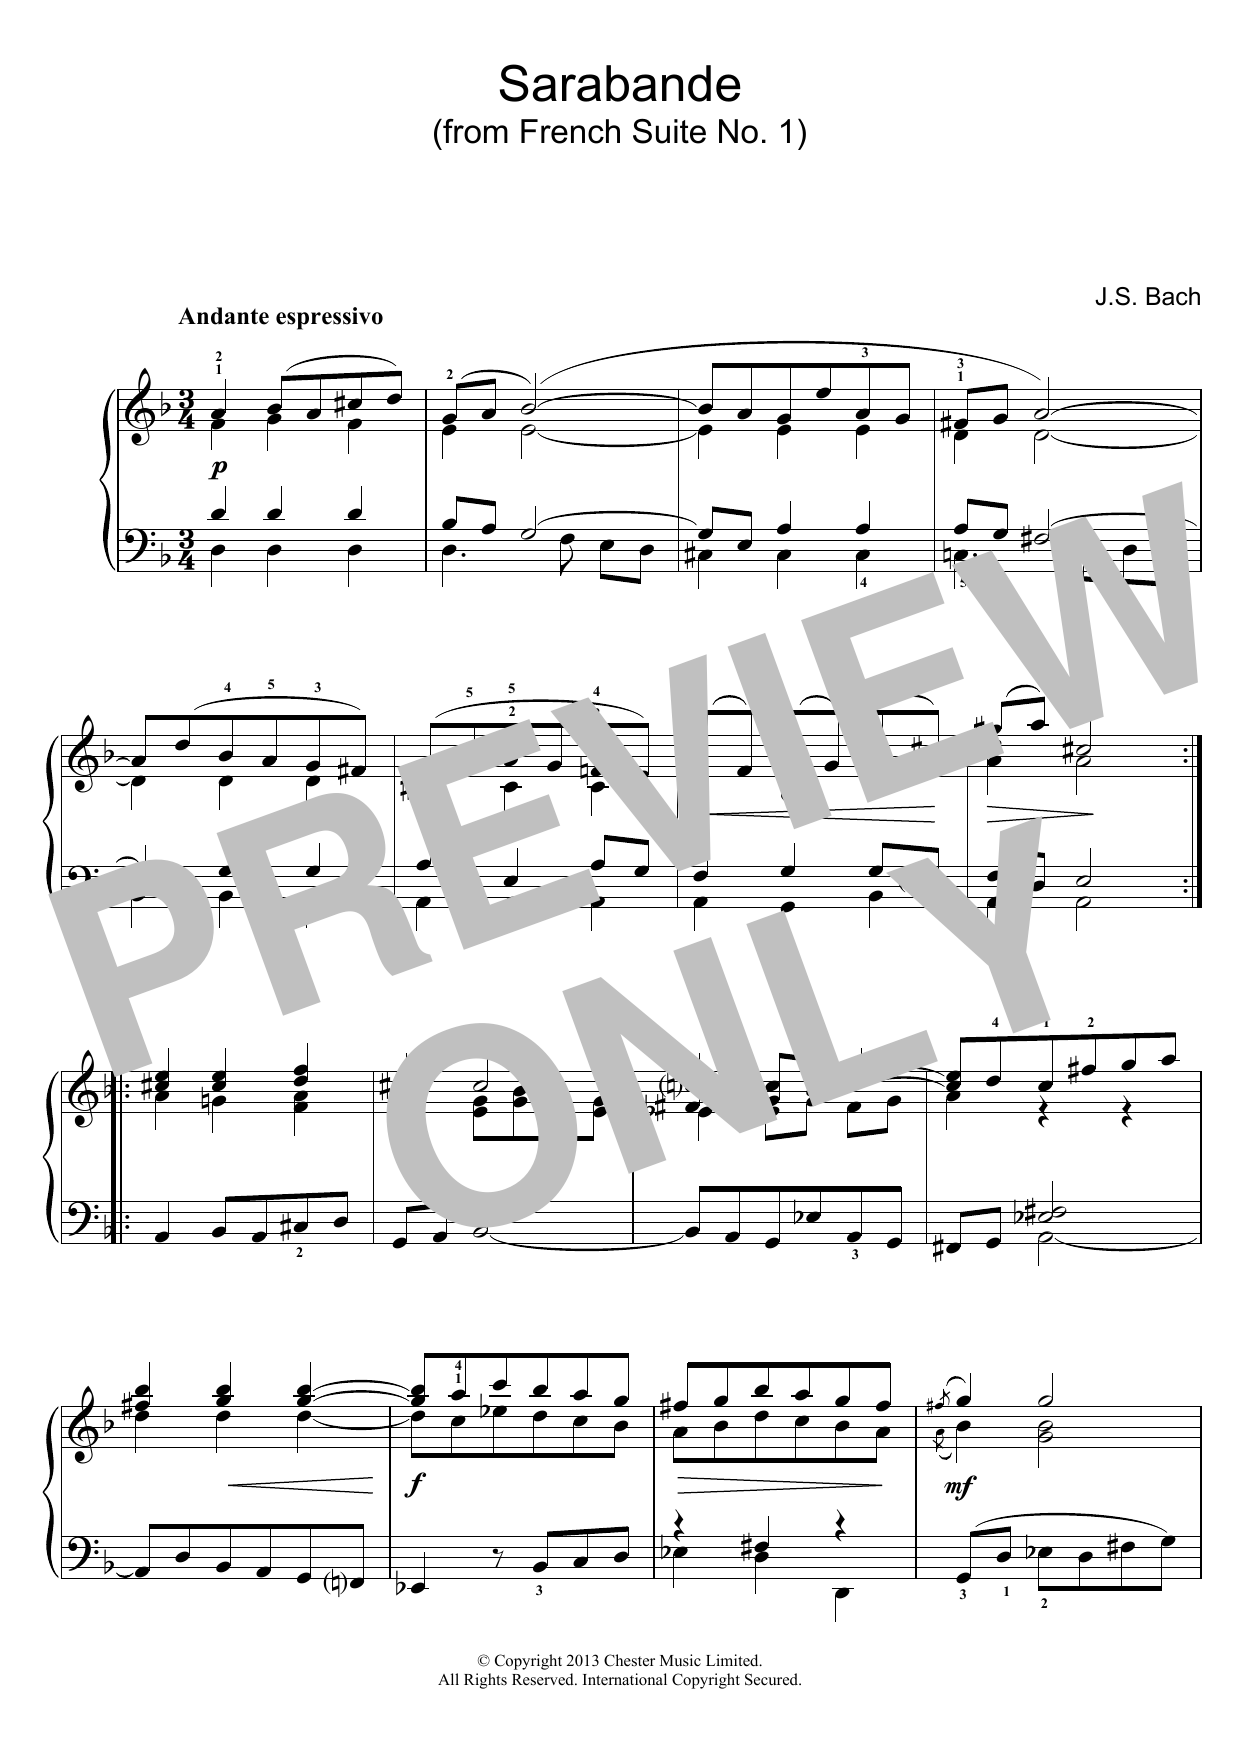 Sarabande (from French Suite No. 1) sheet music